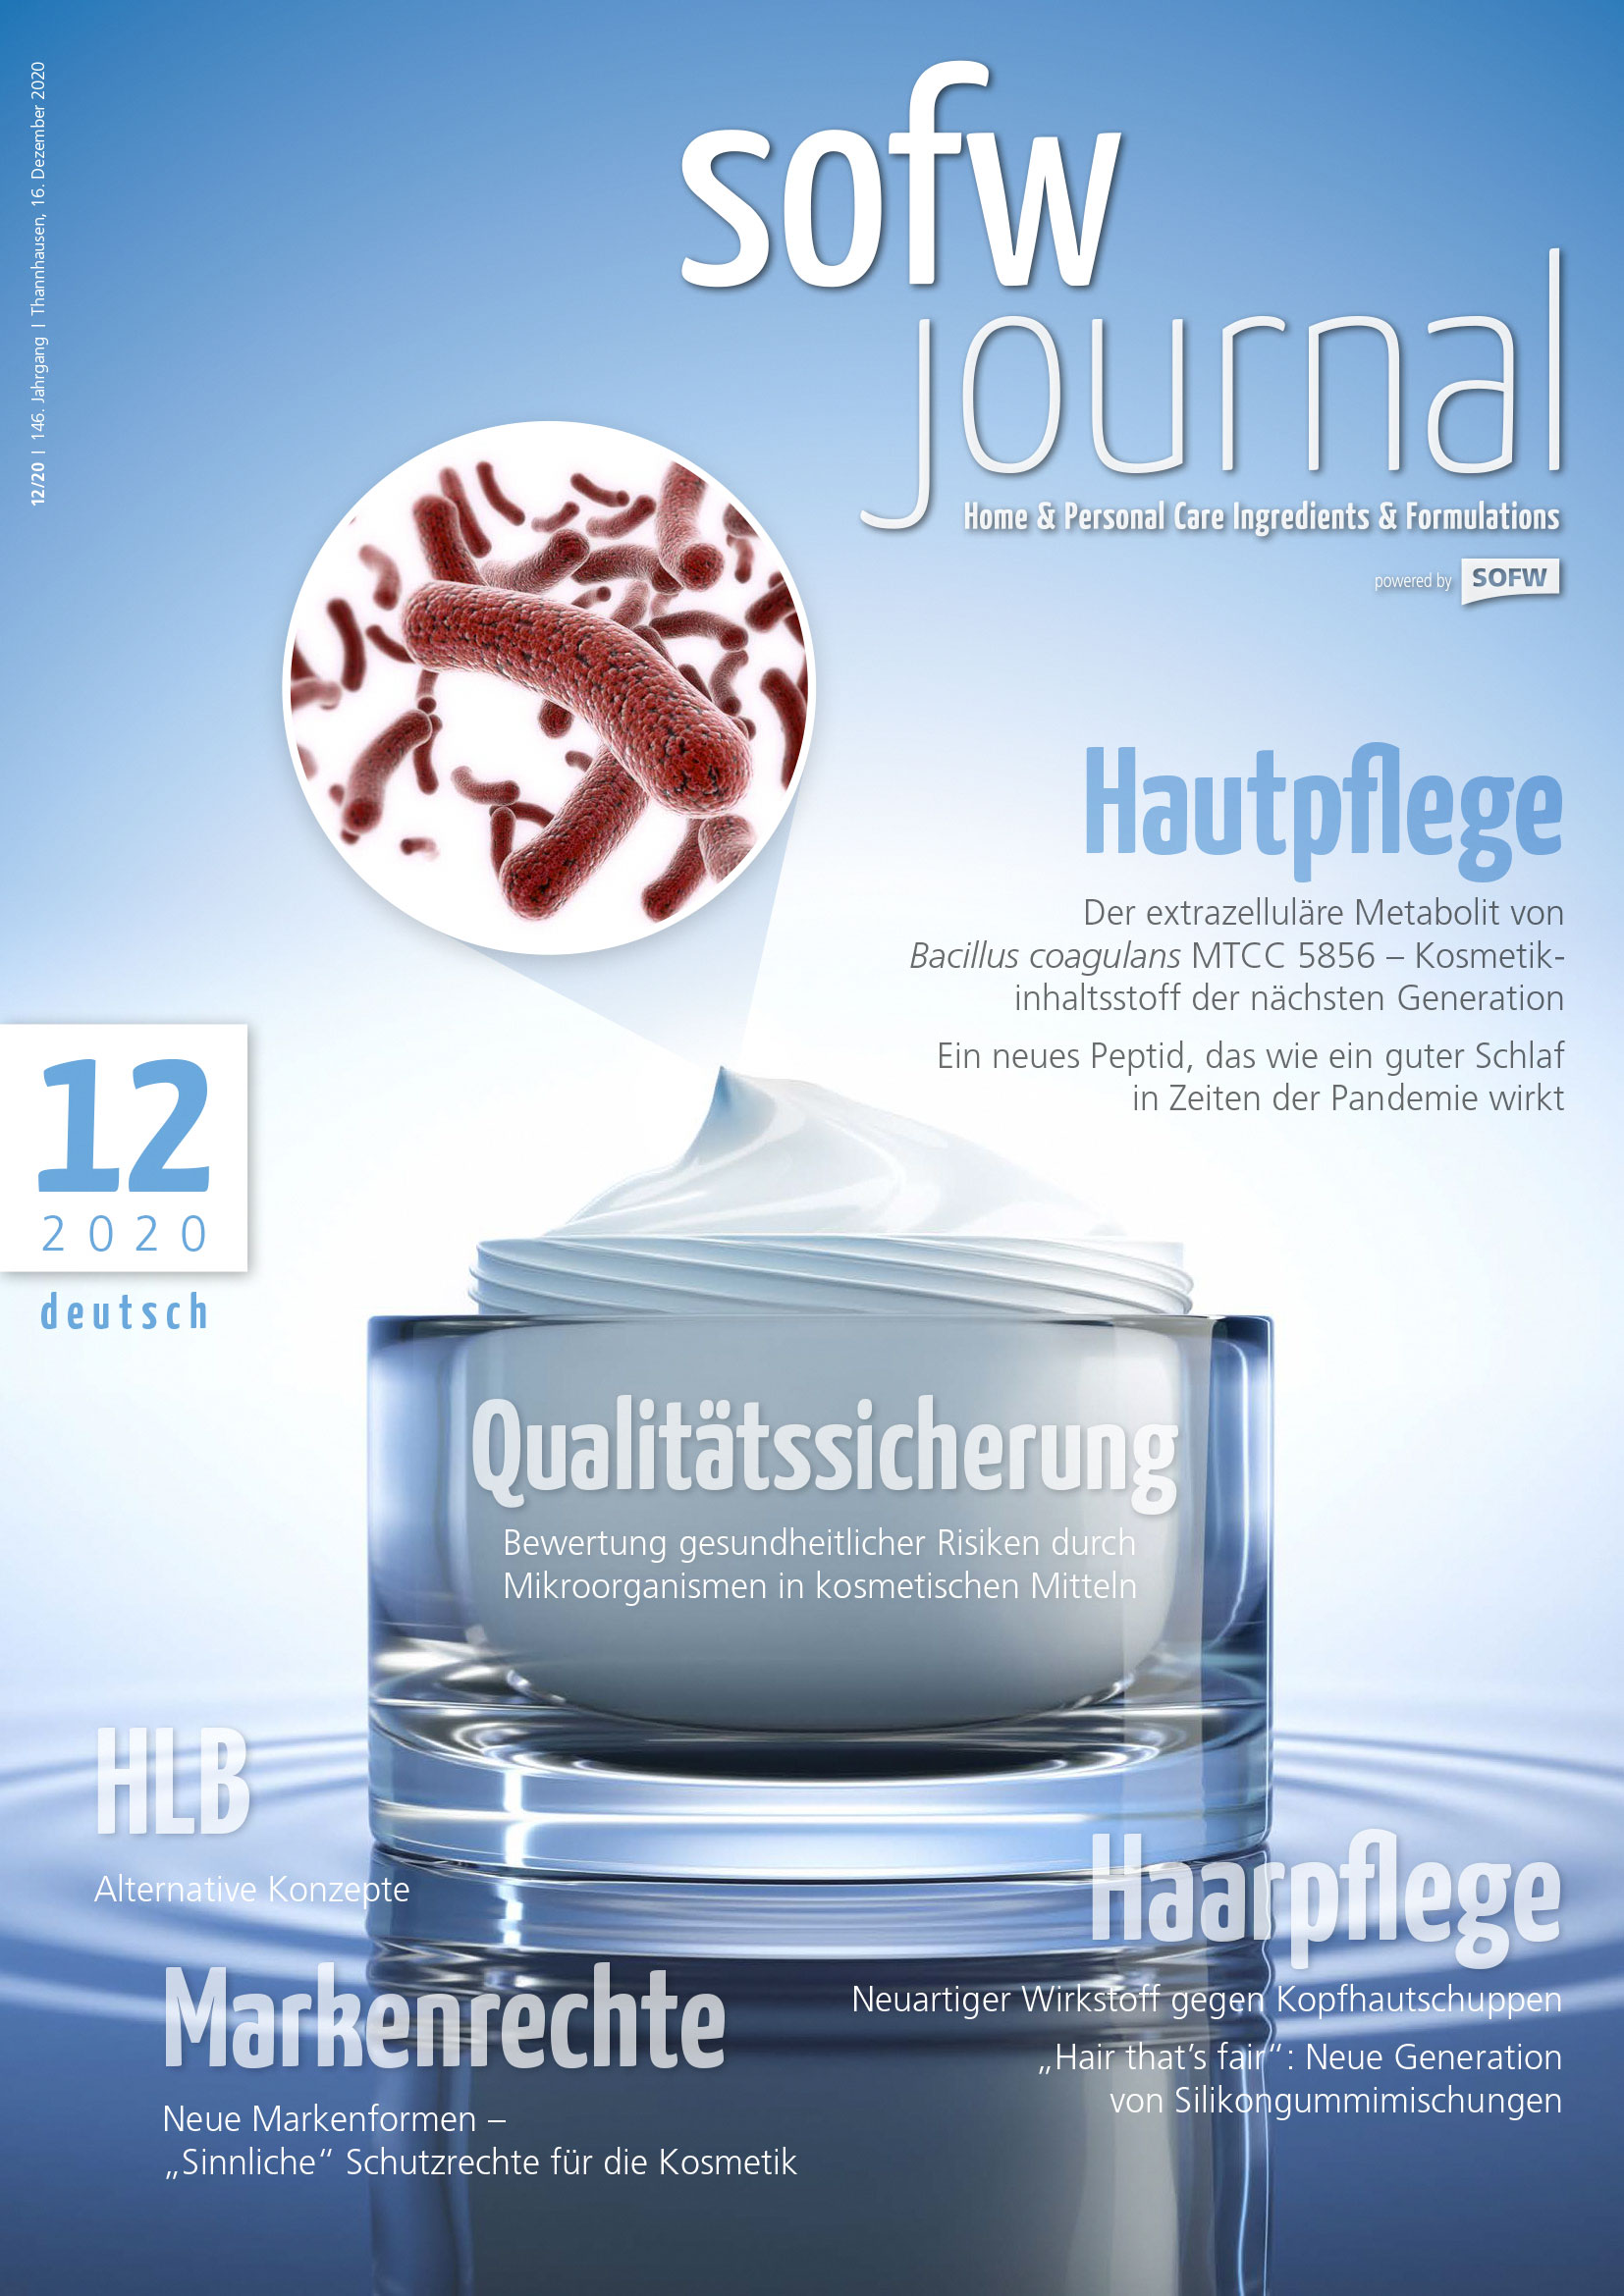 sofw_2012_ger_cover_996446502